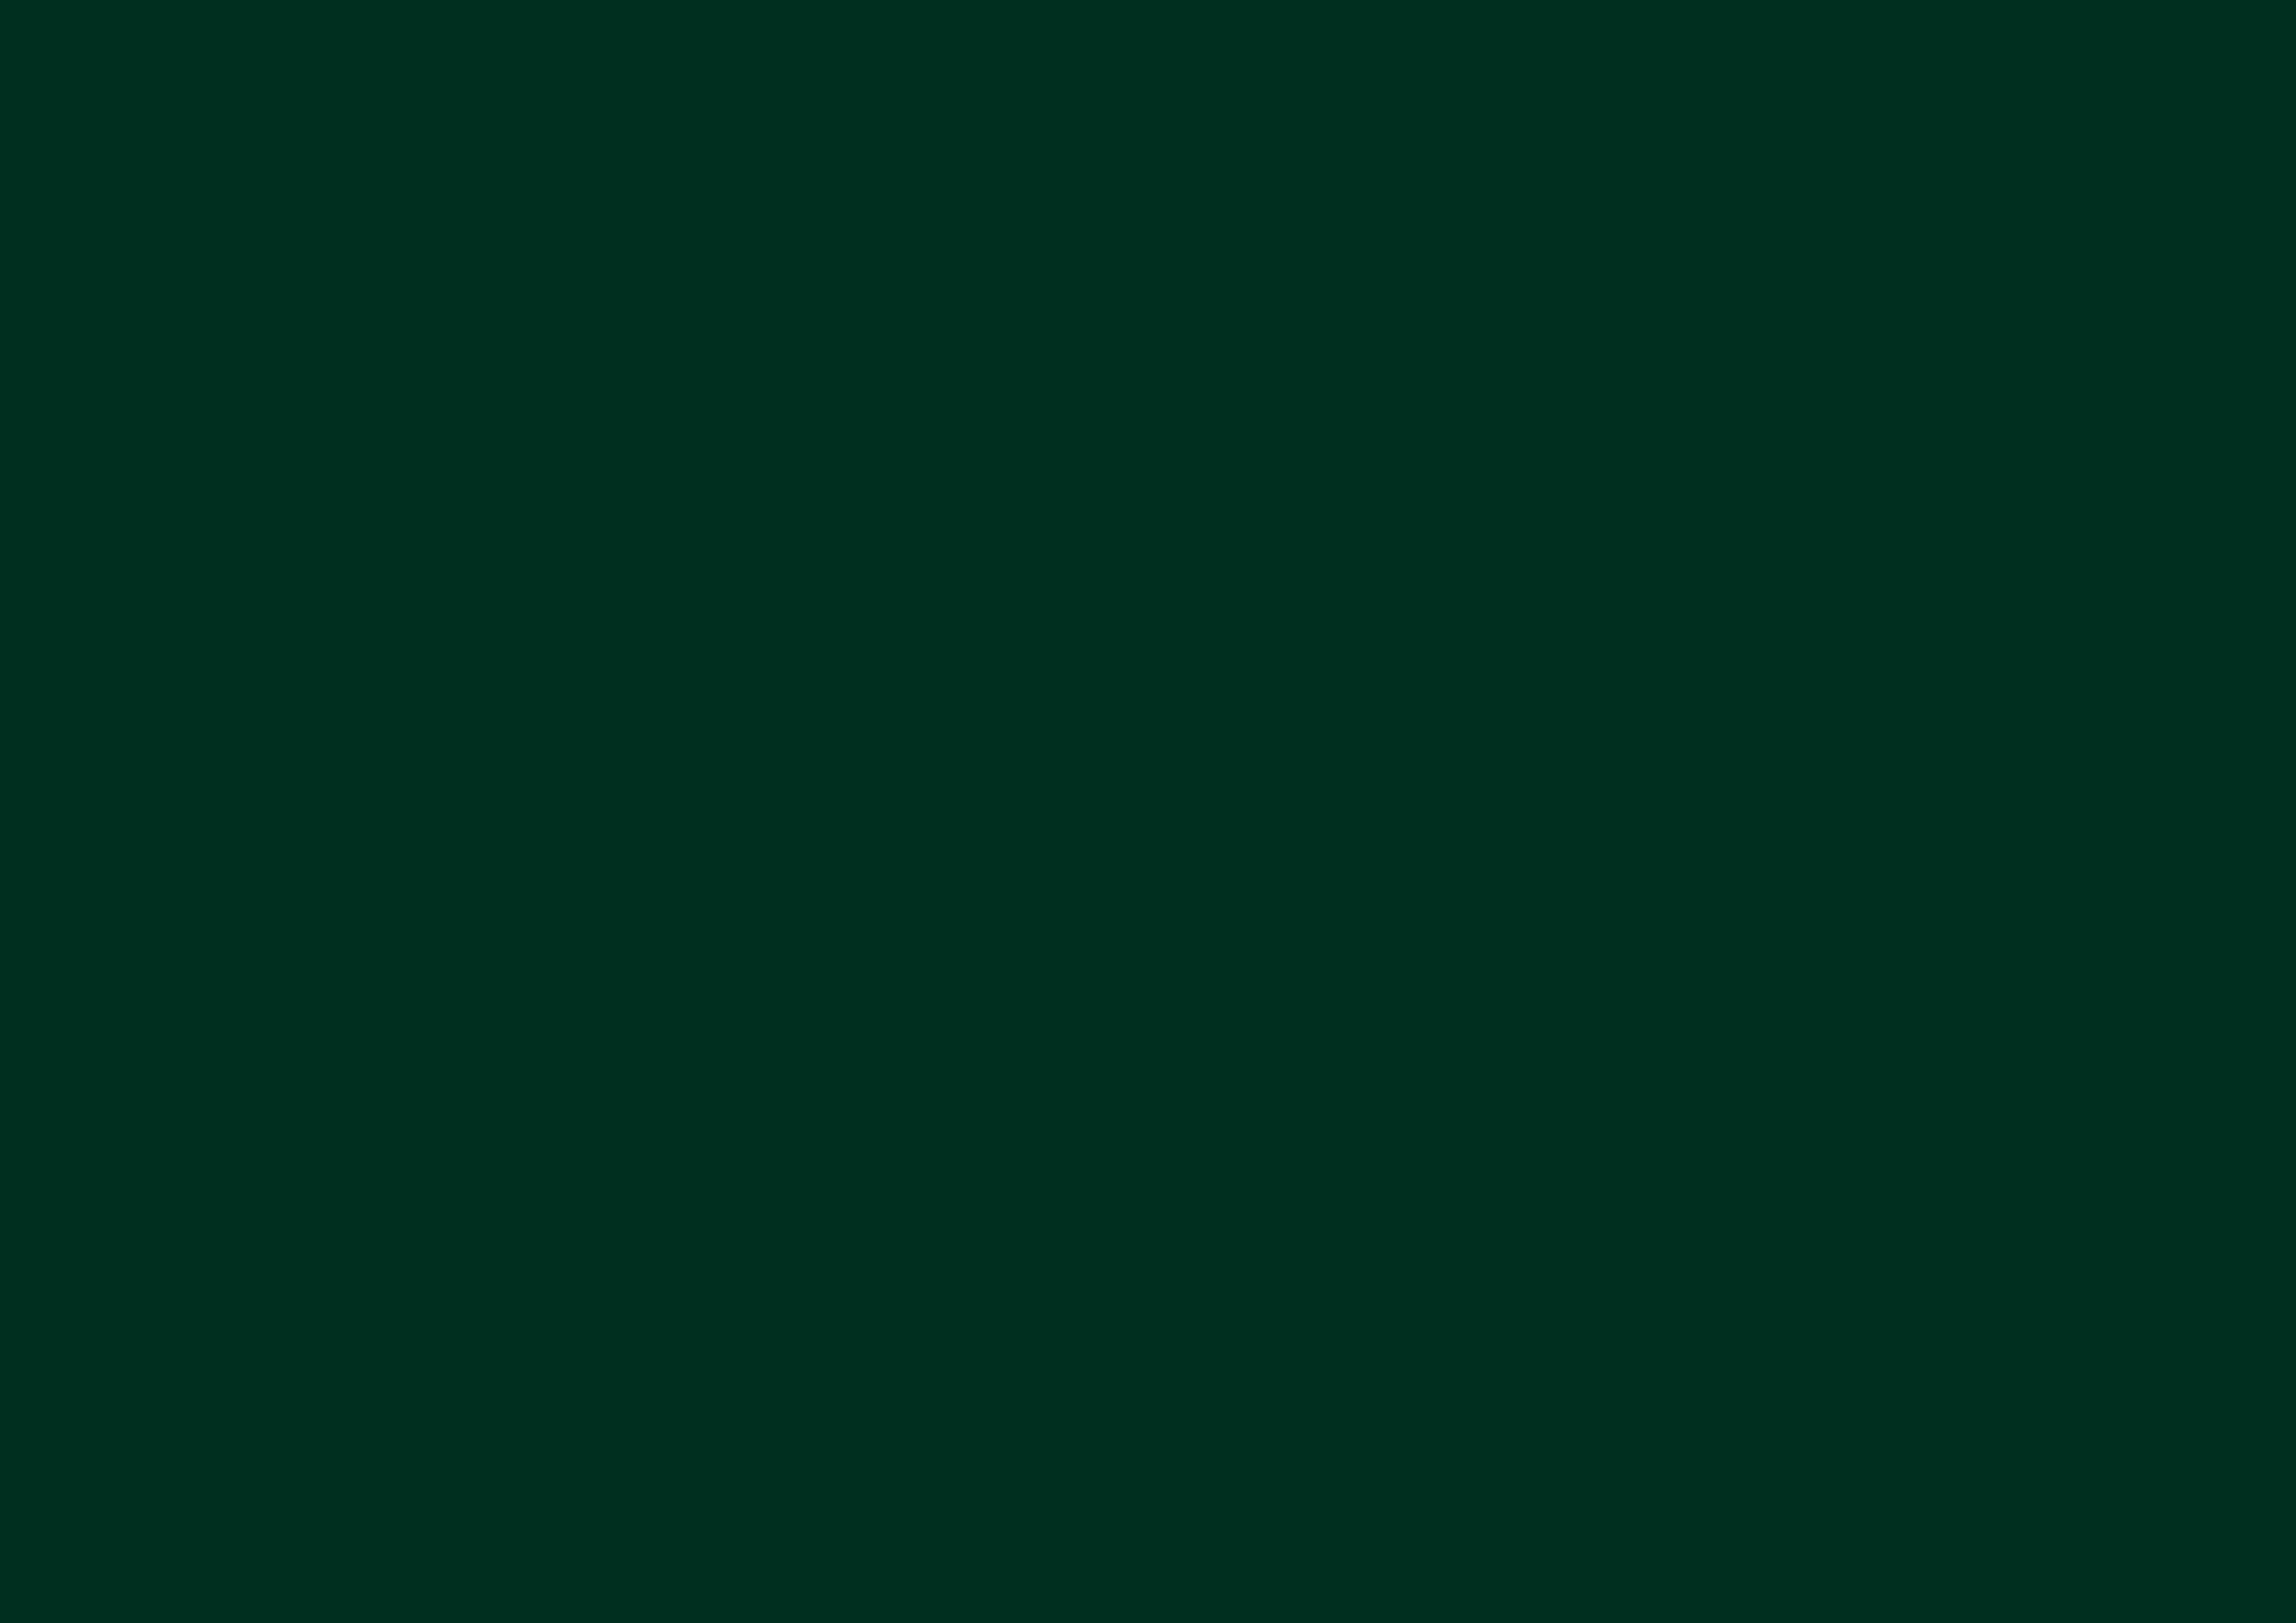 3508x2480 Dark Green Solid Color Background